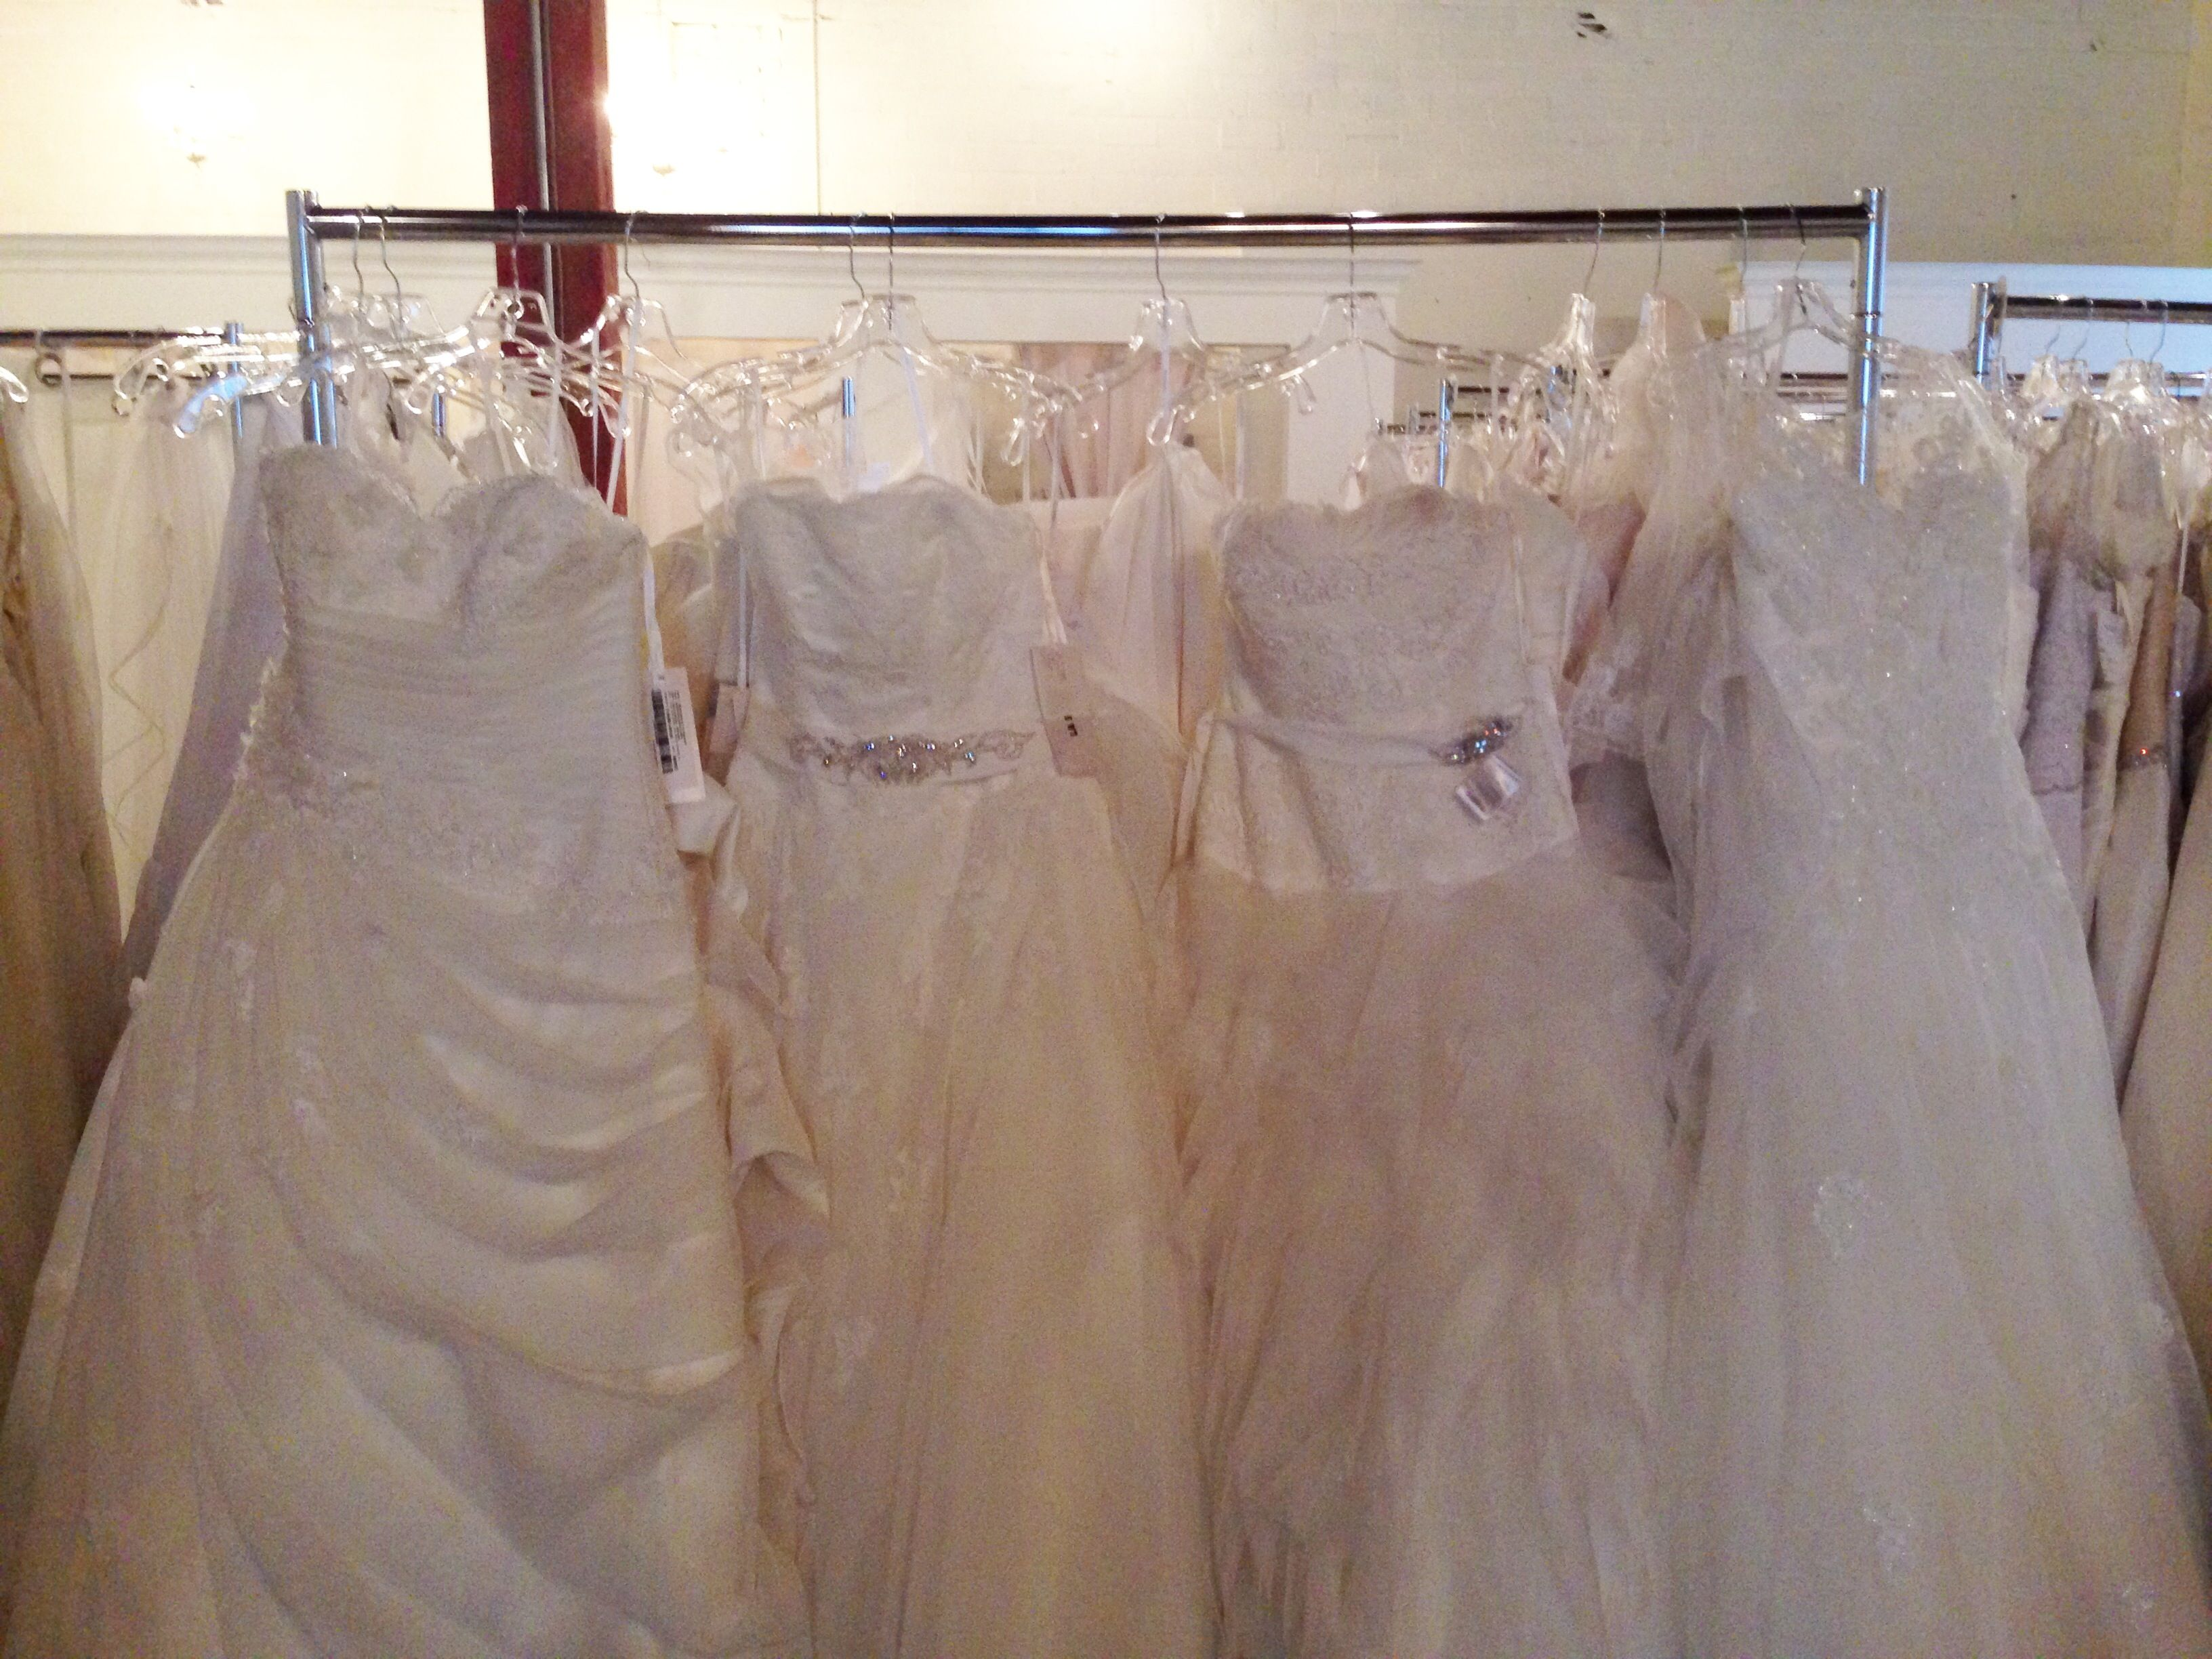 Wedding dress donation  A huge wedding dress donation of brand new sample gowns just